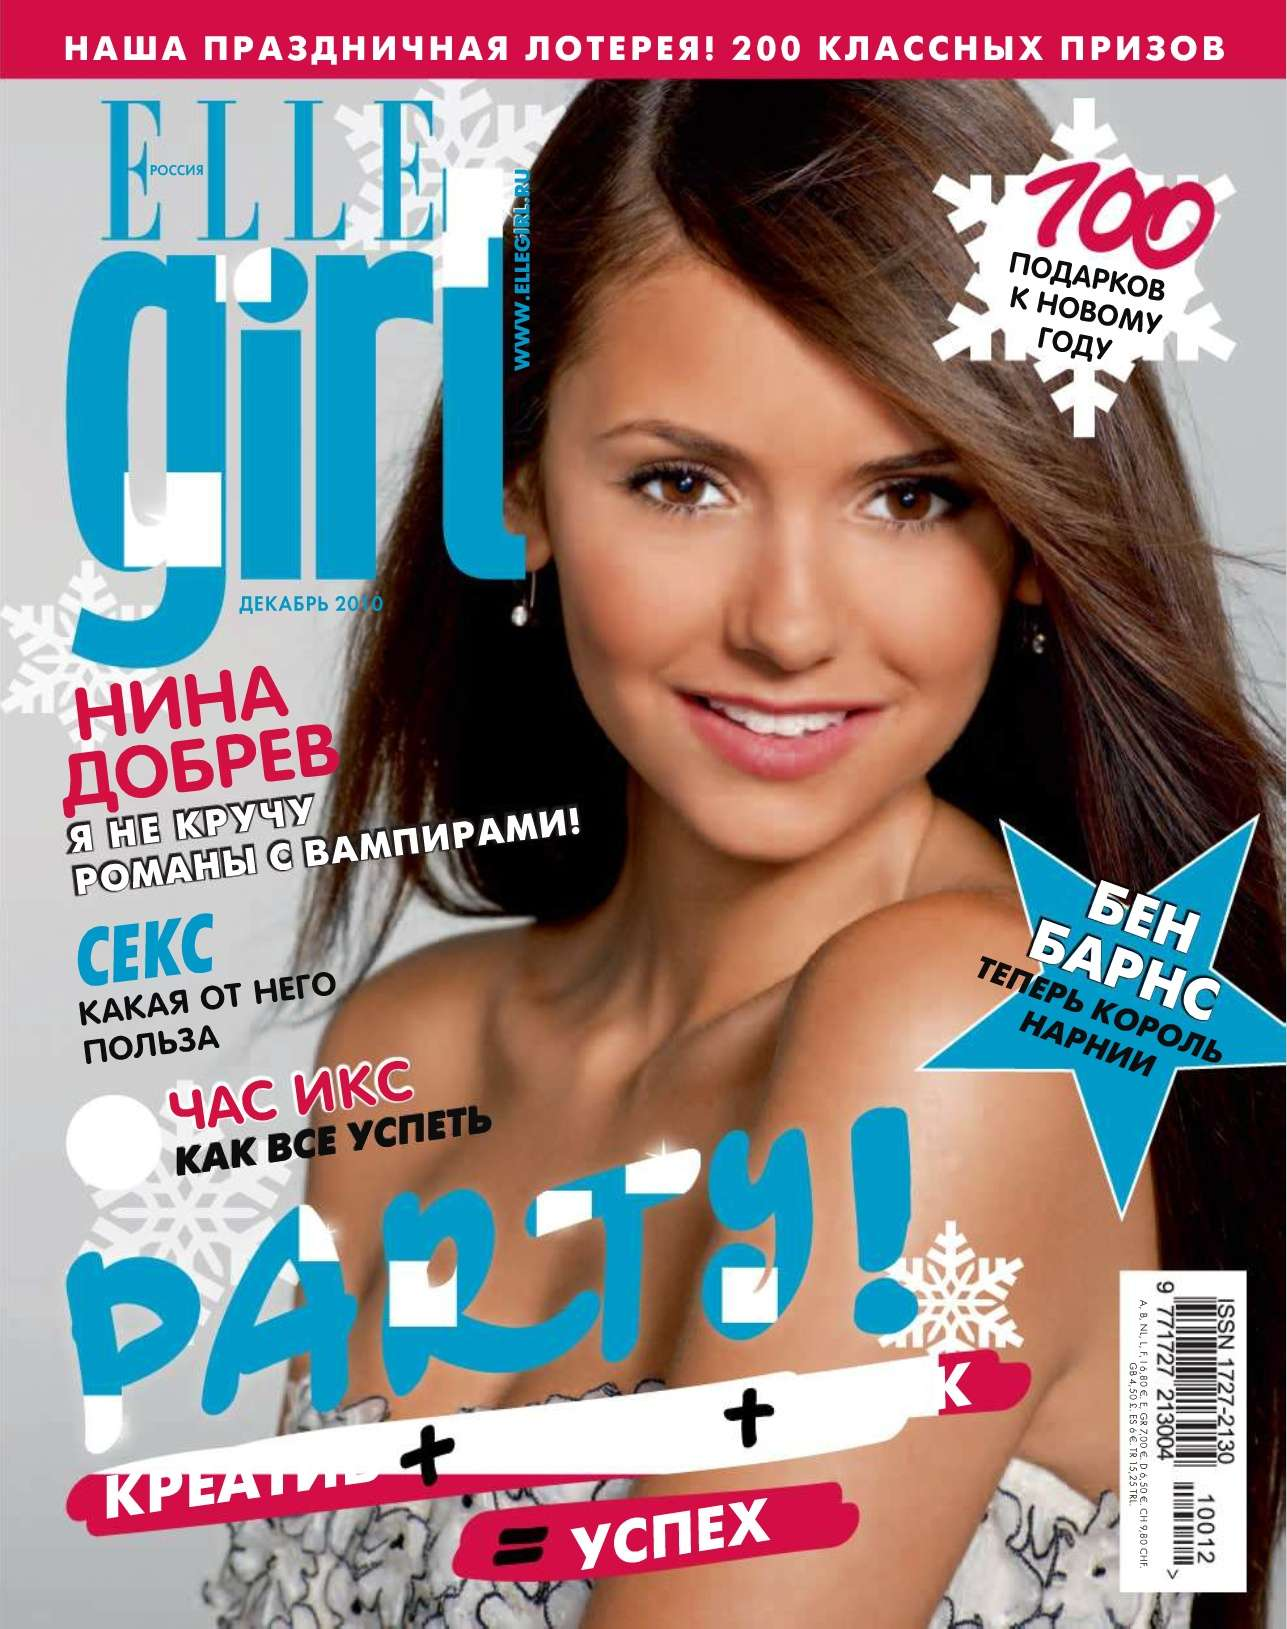 Nina Dobrev in Elle Girl – November 2010 Russia | cOokie Jar